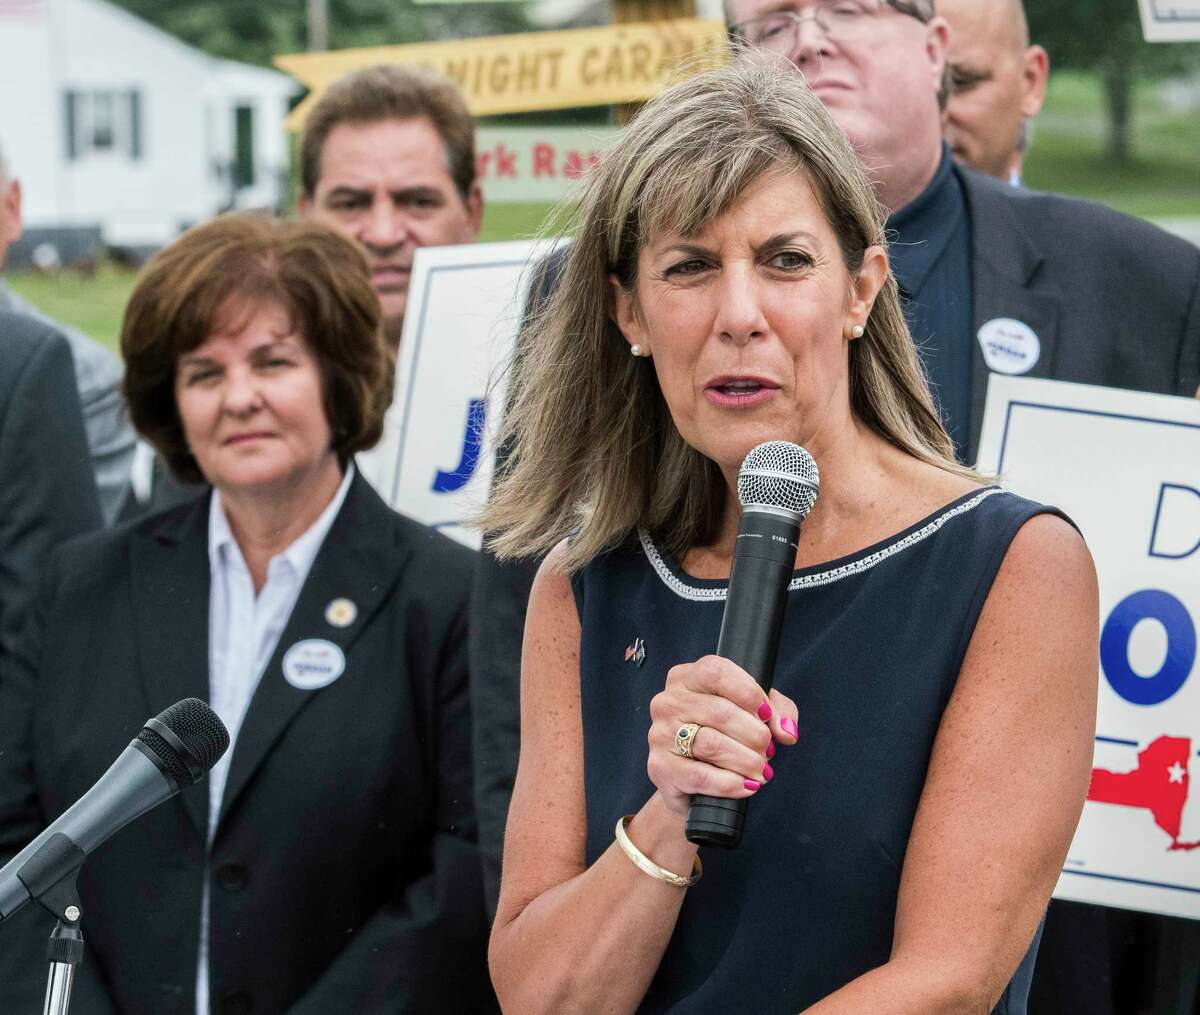 As Senator Kathy Marchione, left watched, Daphne Jordan announced her intention to run for the State Senate Thursday July 26, 2018 at Hayner's Food and Ice-cream shop in Halfmoon, N.Y. (Skip Dickstein/Times Union)